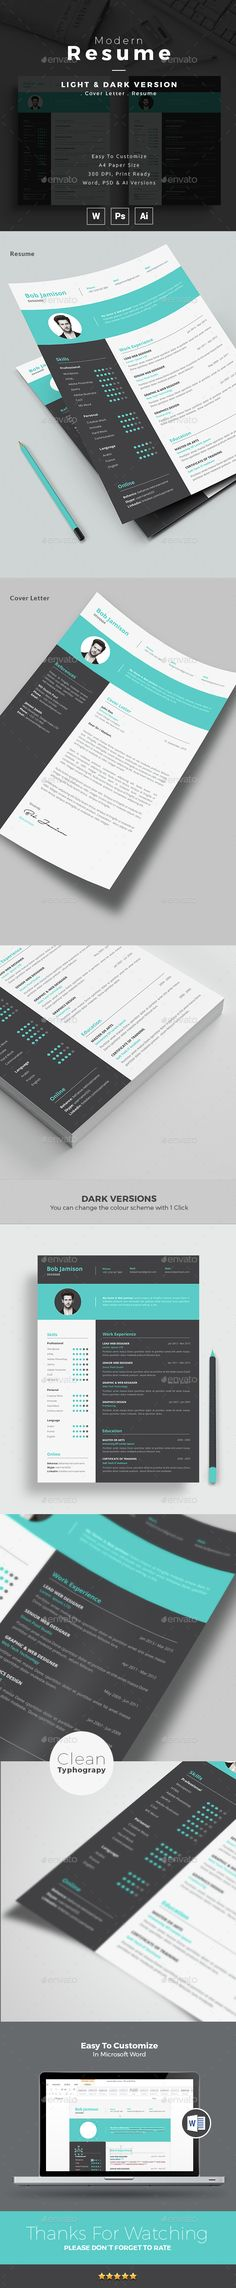 Resume 100 best Resume Templates images on